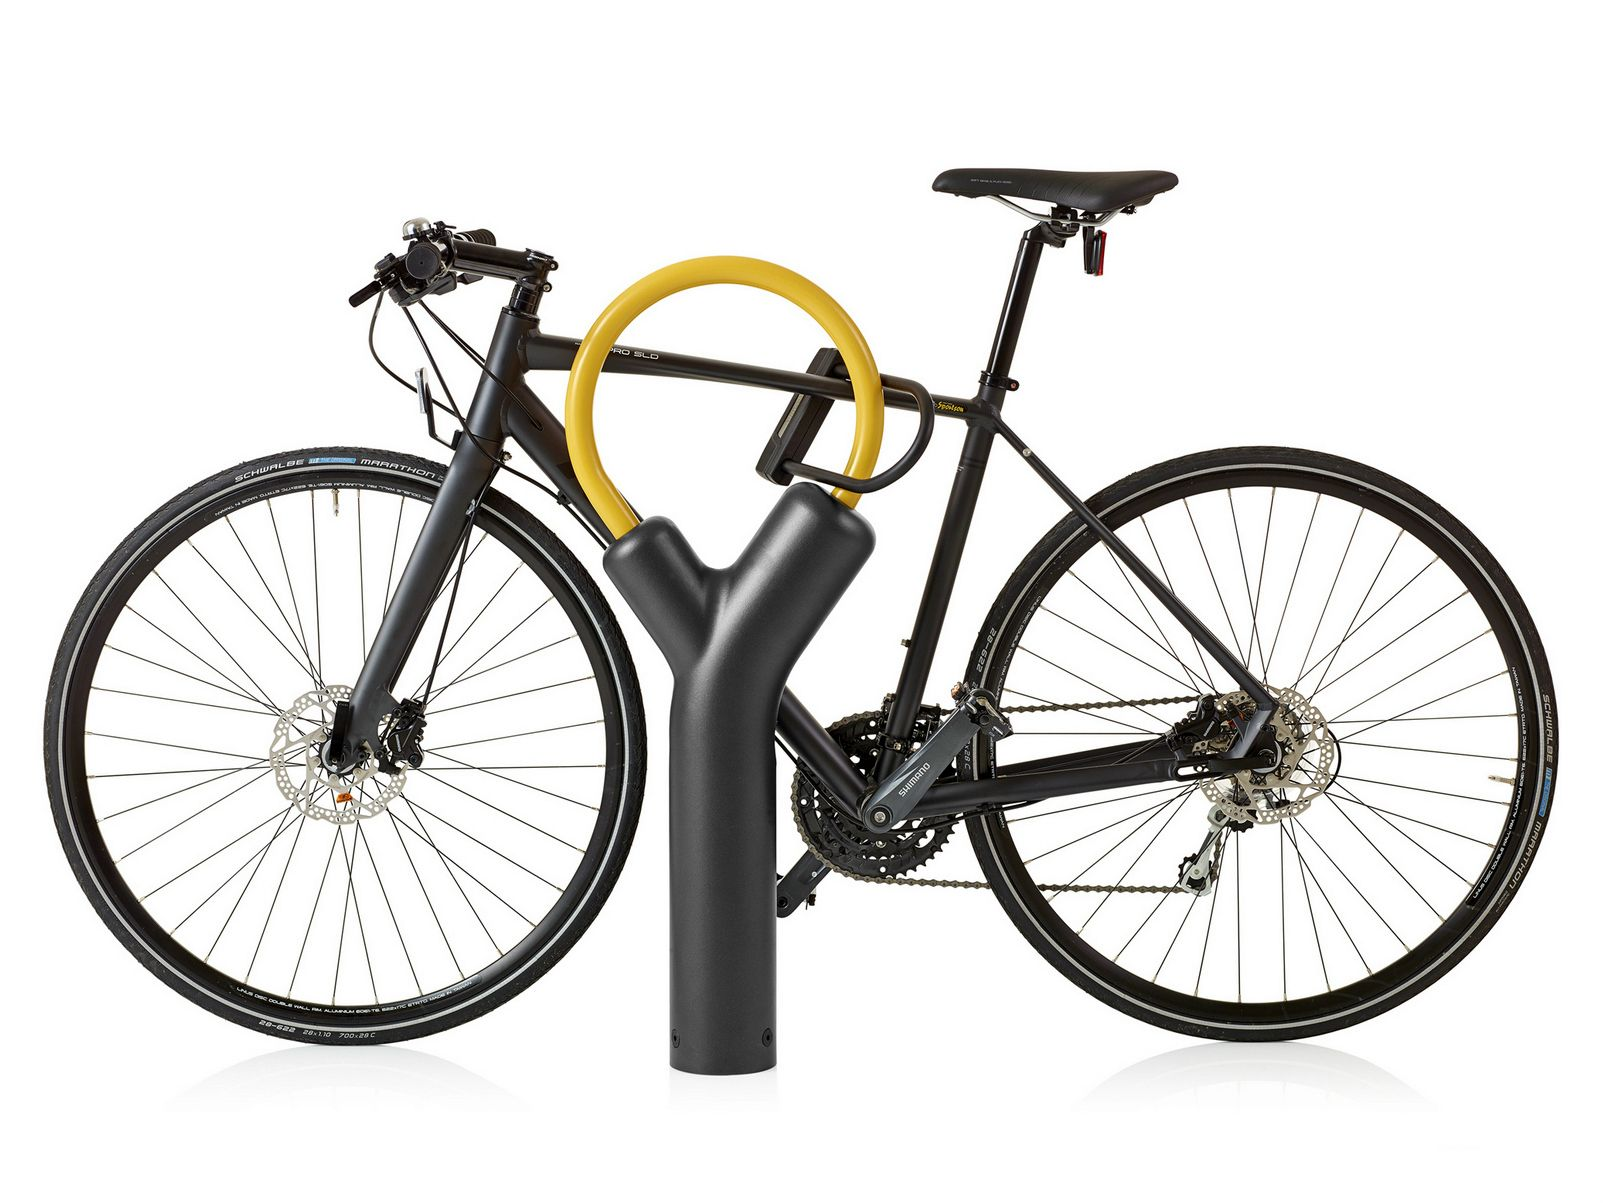 off aluminum dlx lad blu products bikes motobecane new rack save htm stylish from city to classic bike up bistro